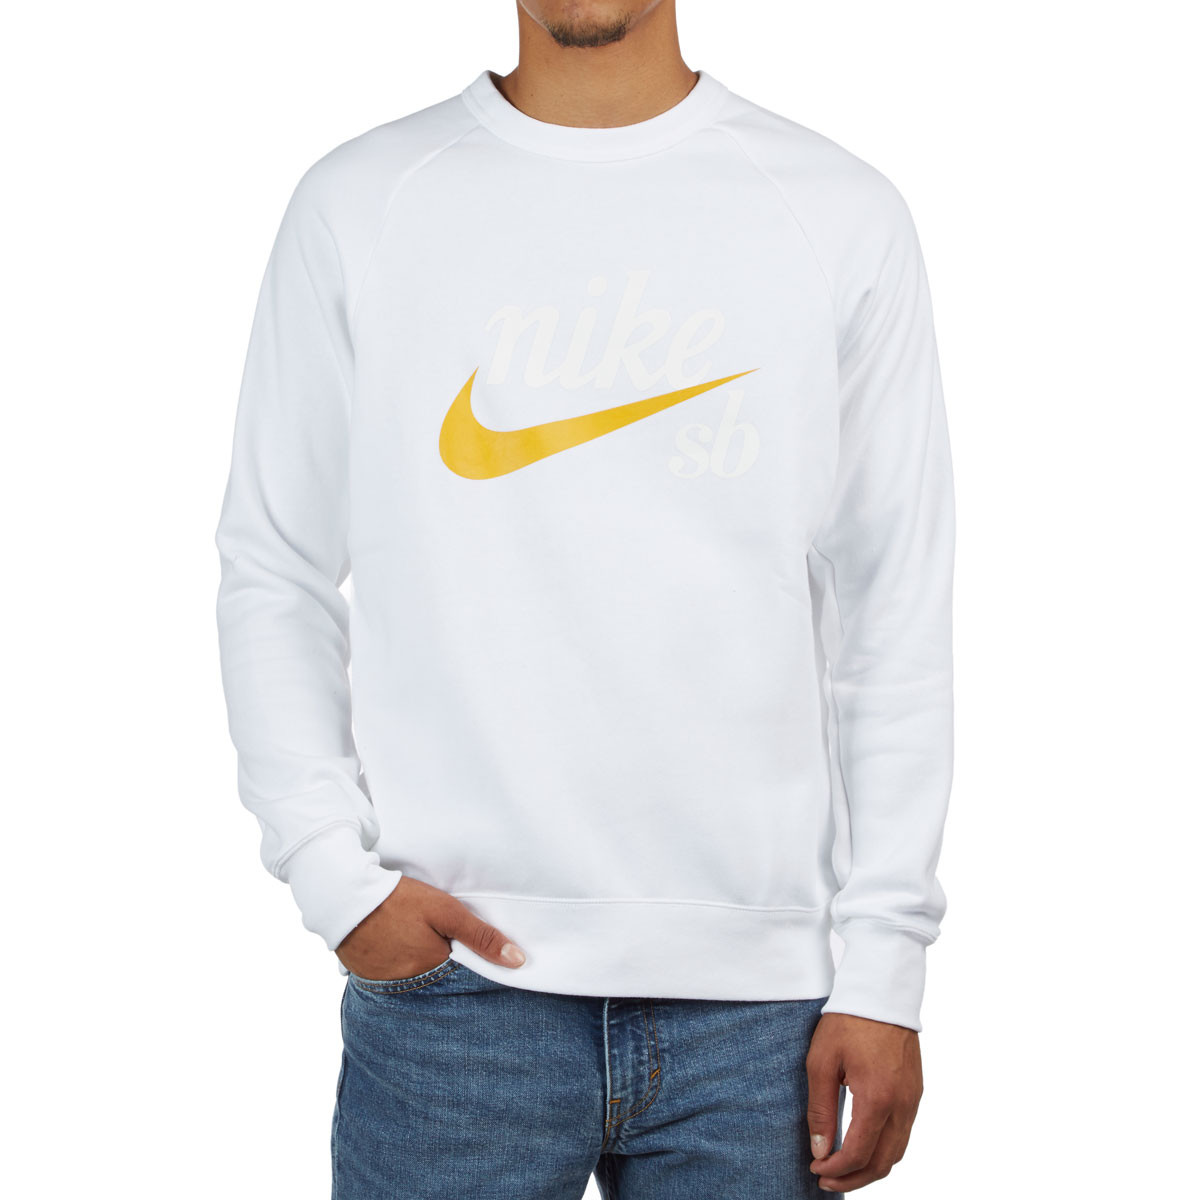 Top Crew Sweatshirt Icon Nike Ochre WhiteYellow SB Heritage Graphics 4R35jAL